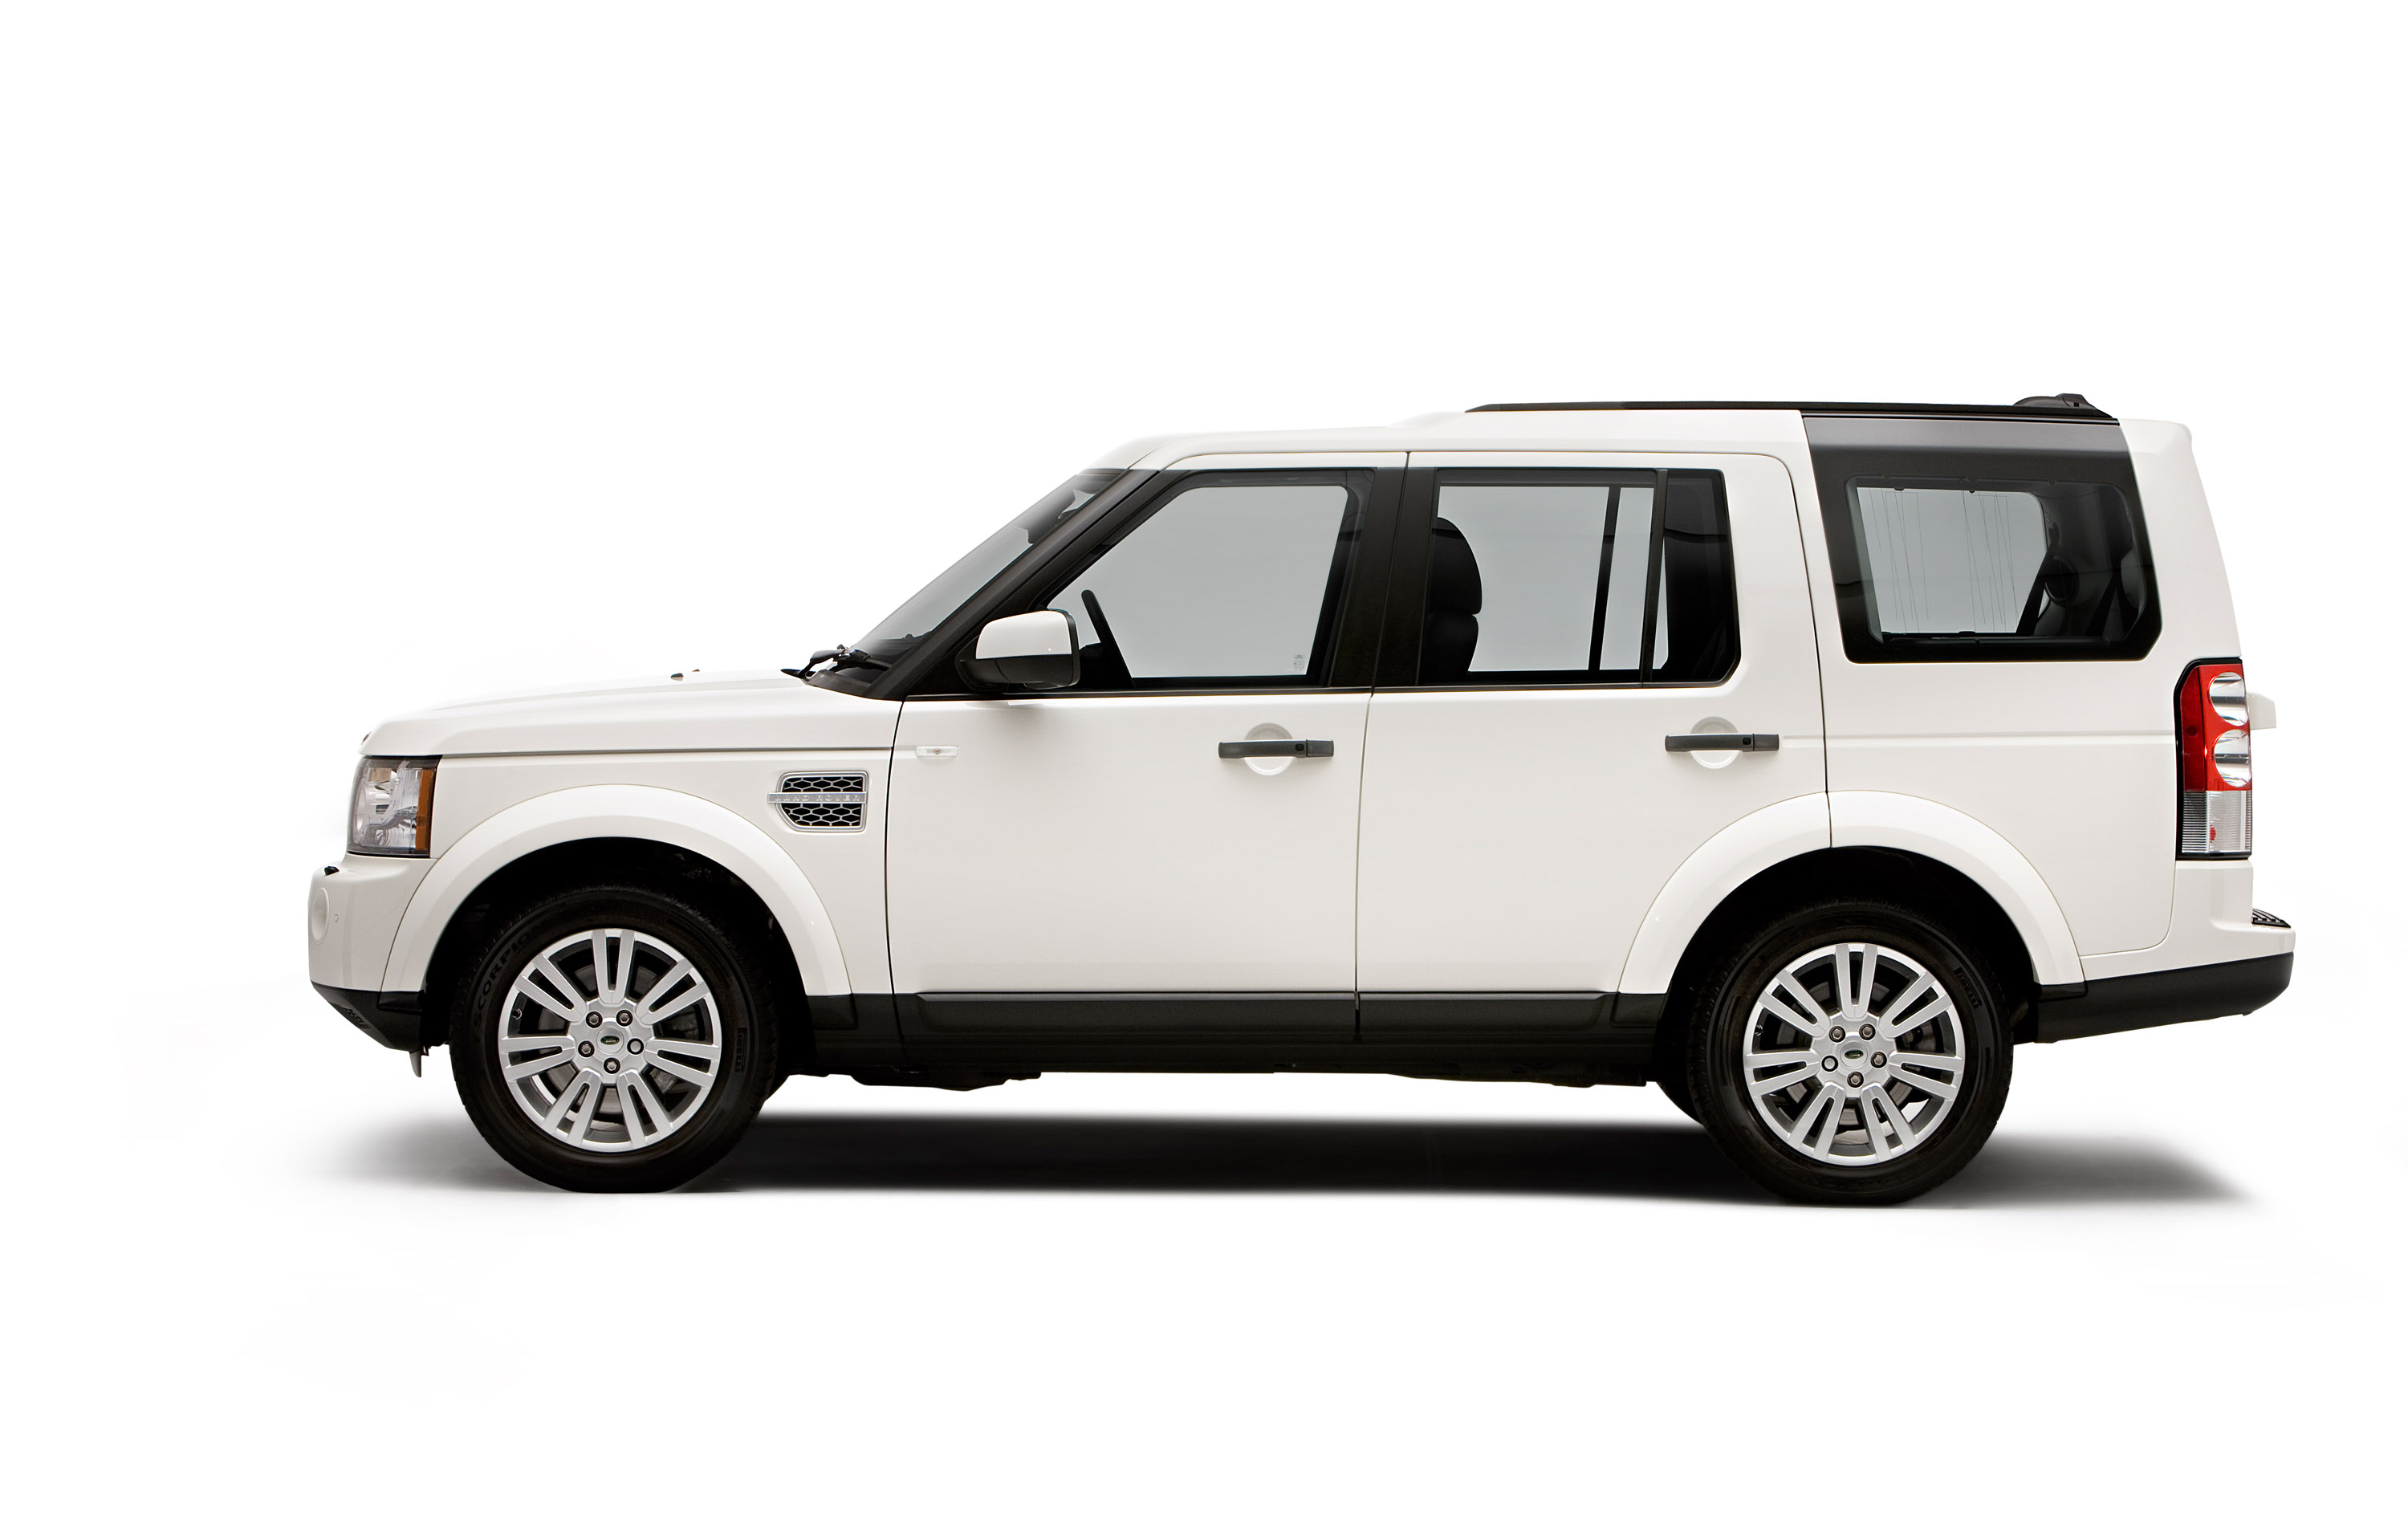 2010 Land Rover Discovery Picture 28379